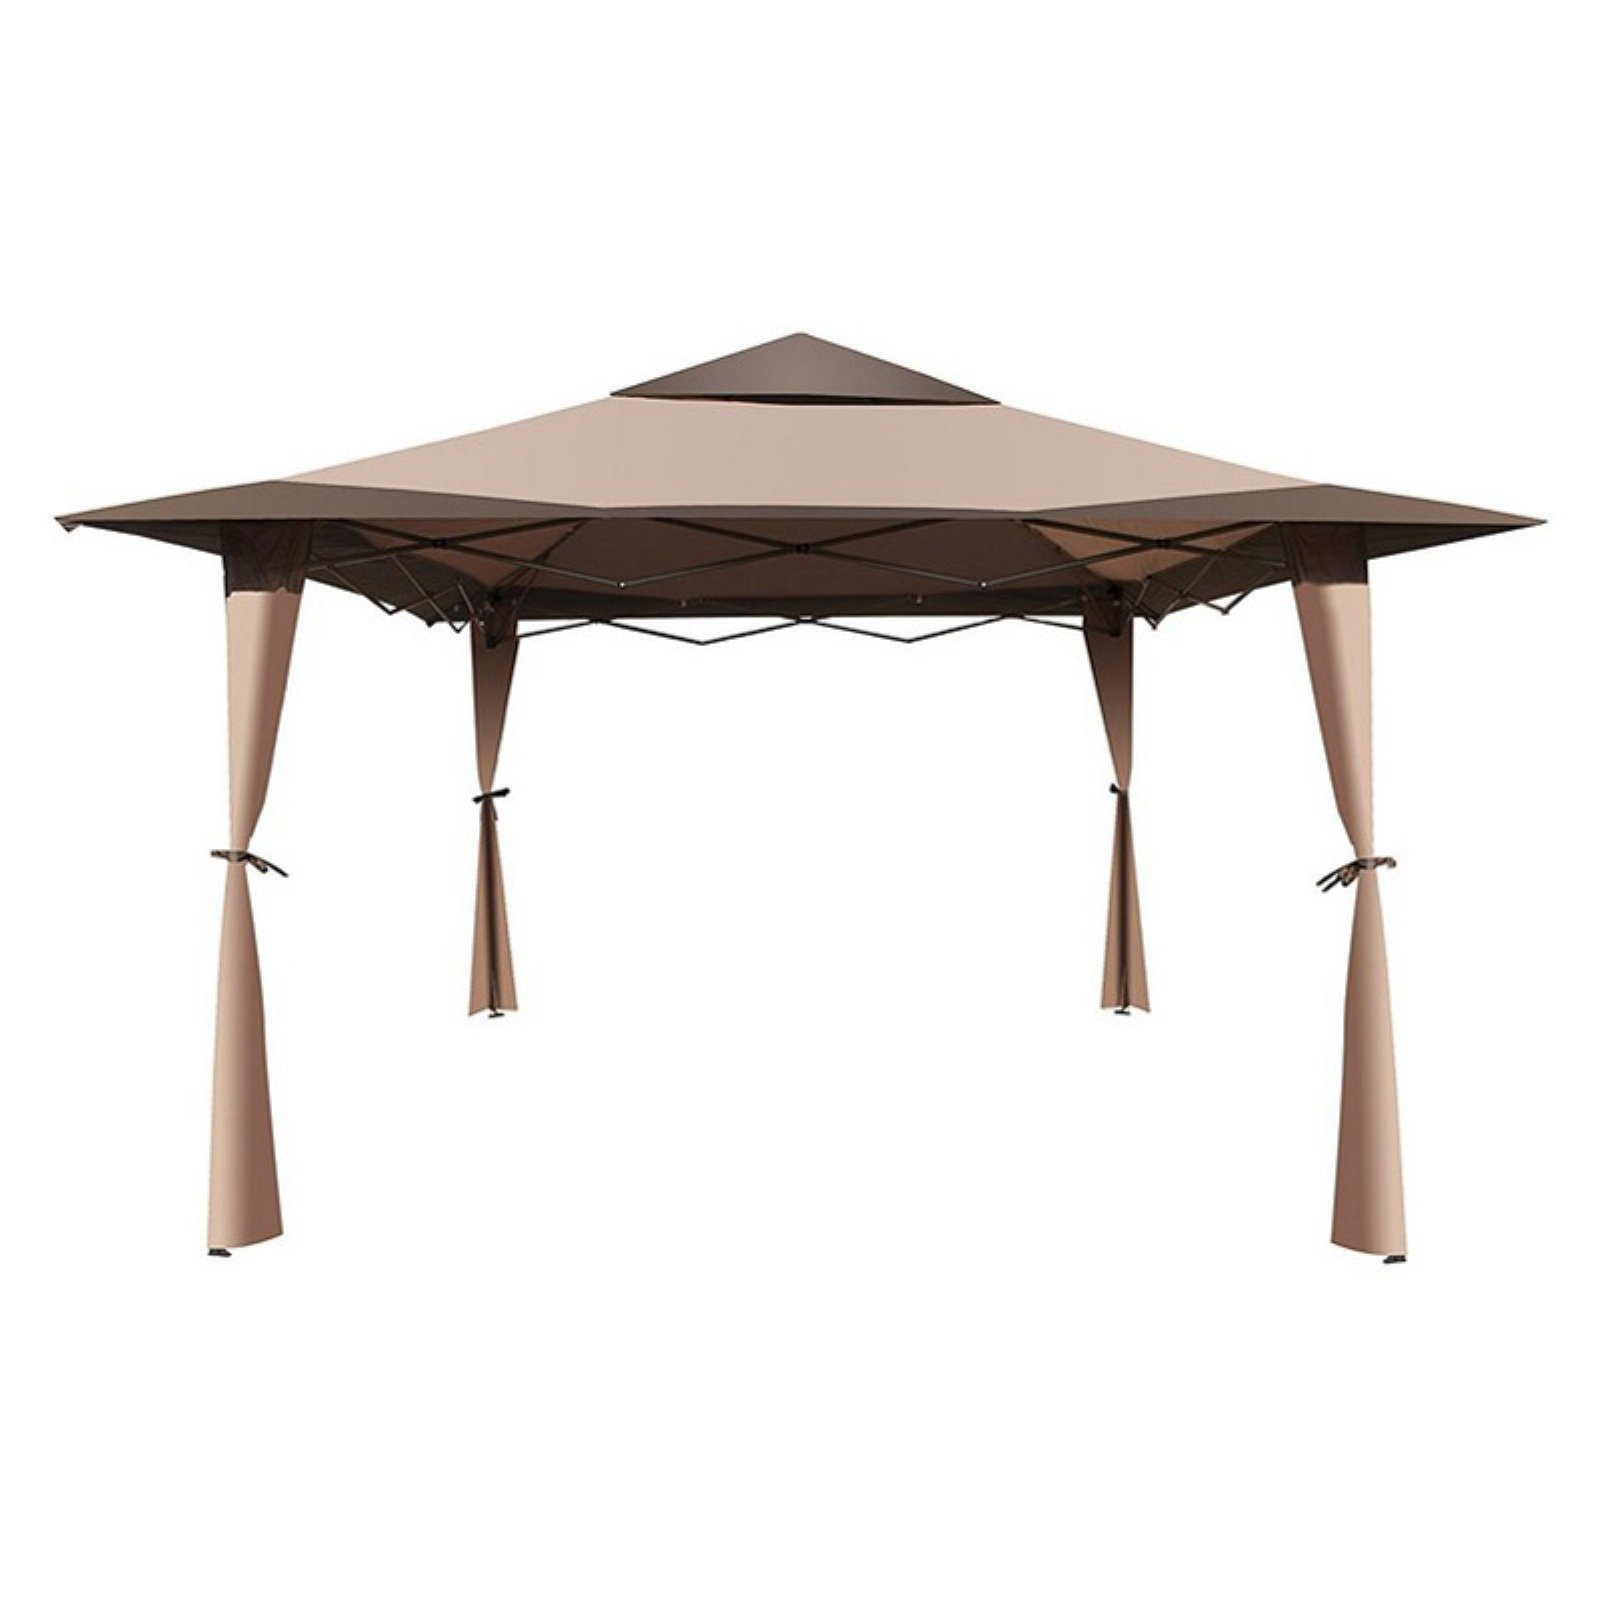 ALEKO GZB004 Double-Roof Polyester Patio Gazebo Canopy Brown 10u0027 x 10  sc 1 st  Walmart & ALEKO GZB004 Double-Roof Polyester Patio Gazebo Canopy Brown 10 ...